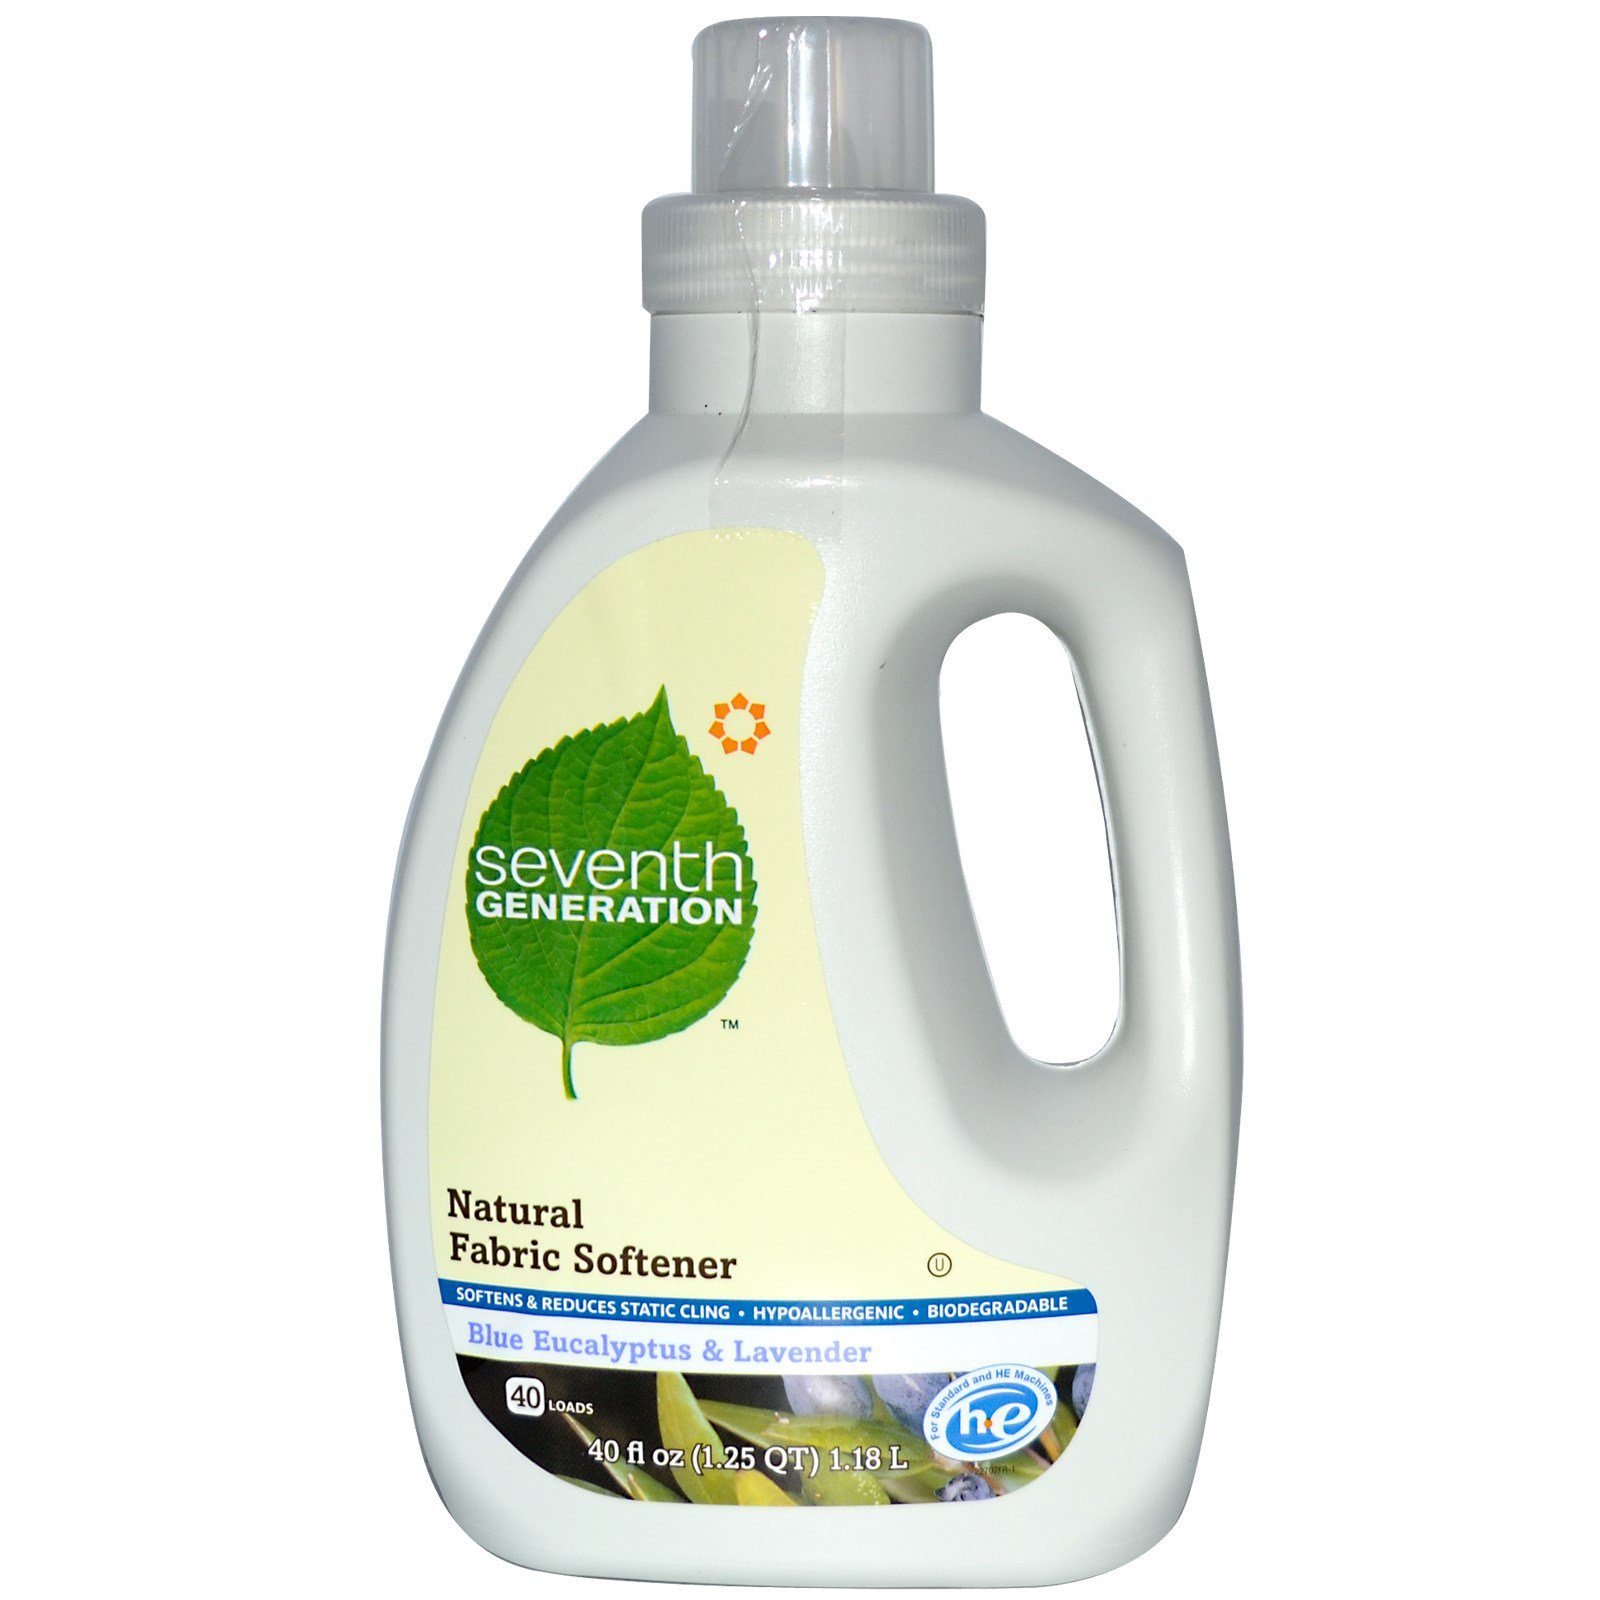 Seventh Generation, Natural Fabric